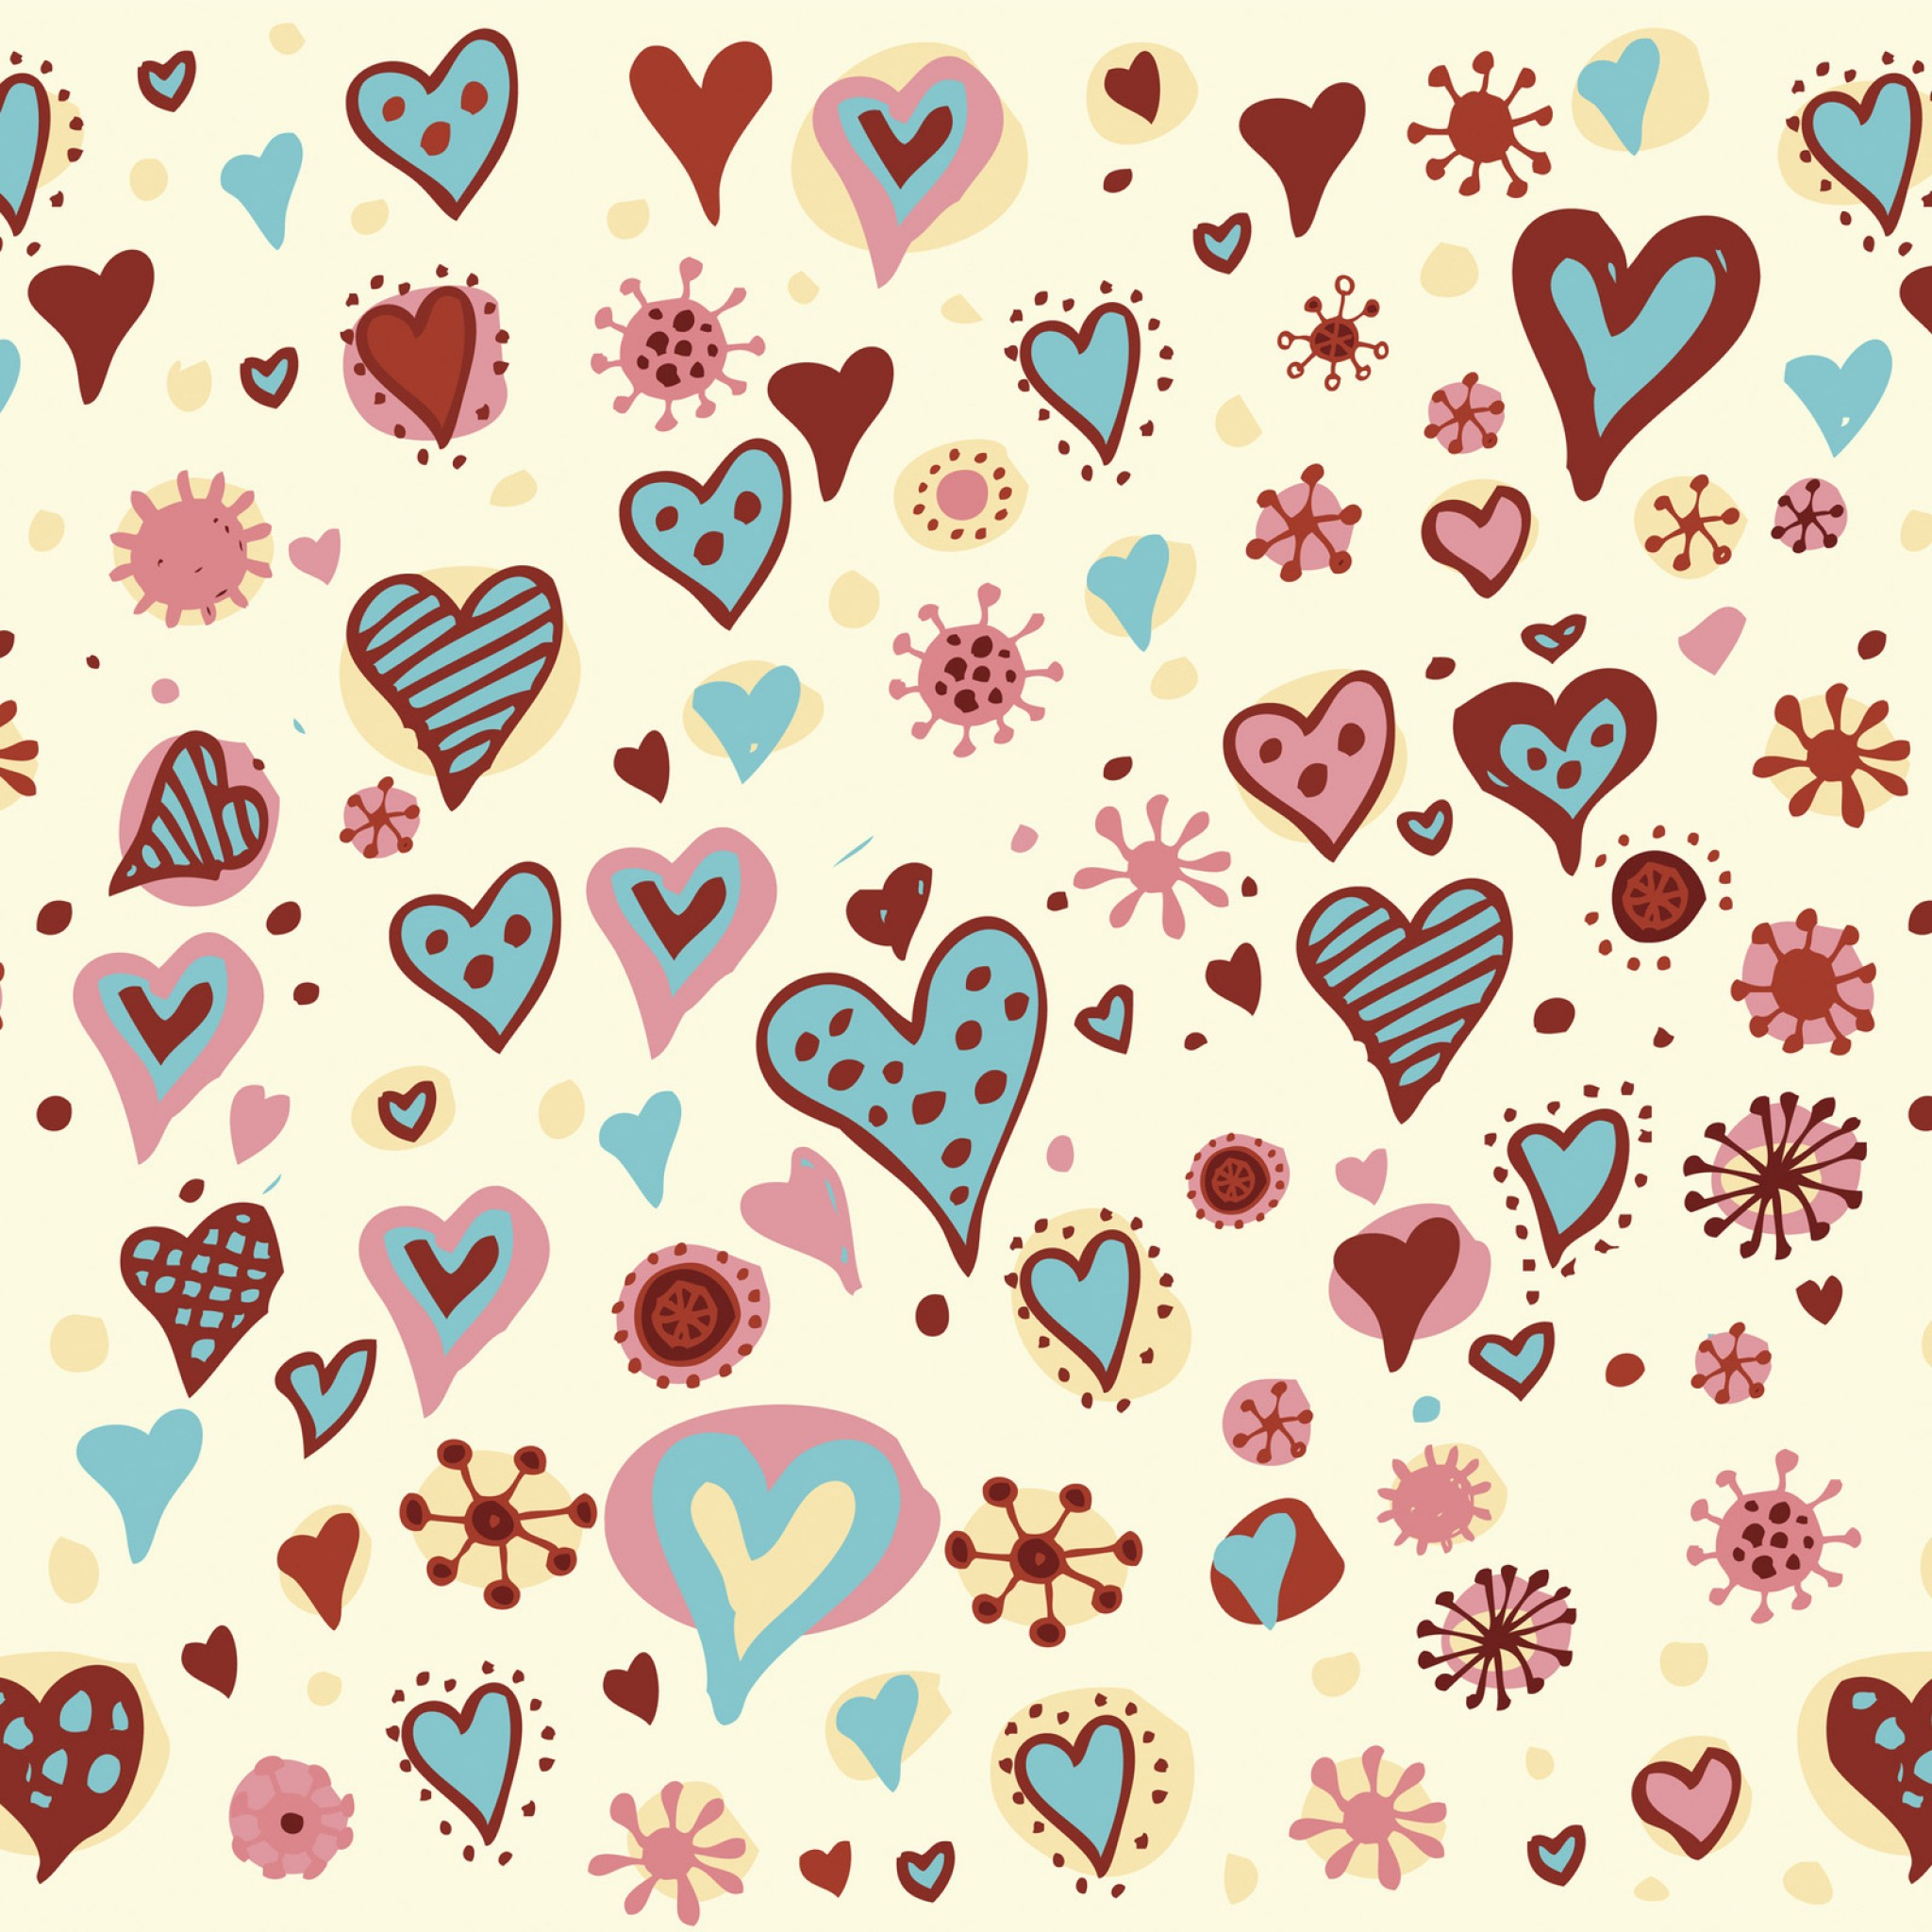 Valentines Day Hearts Textures iPad Air Wallpapers Free Download